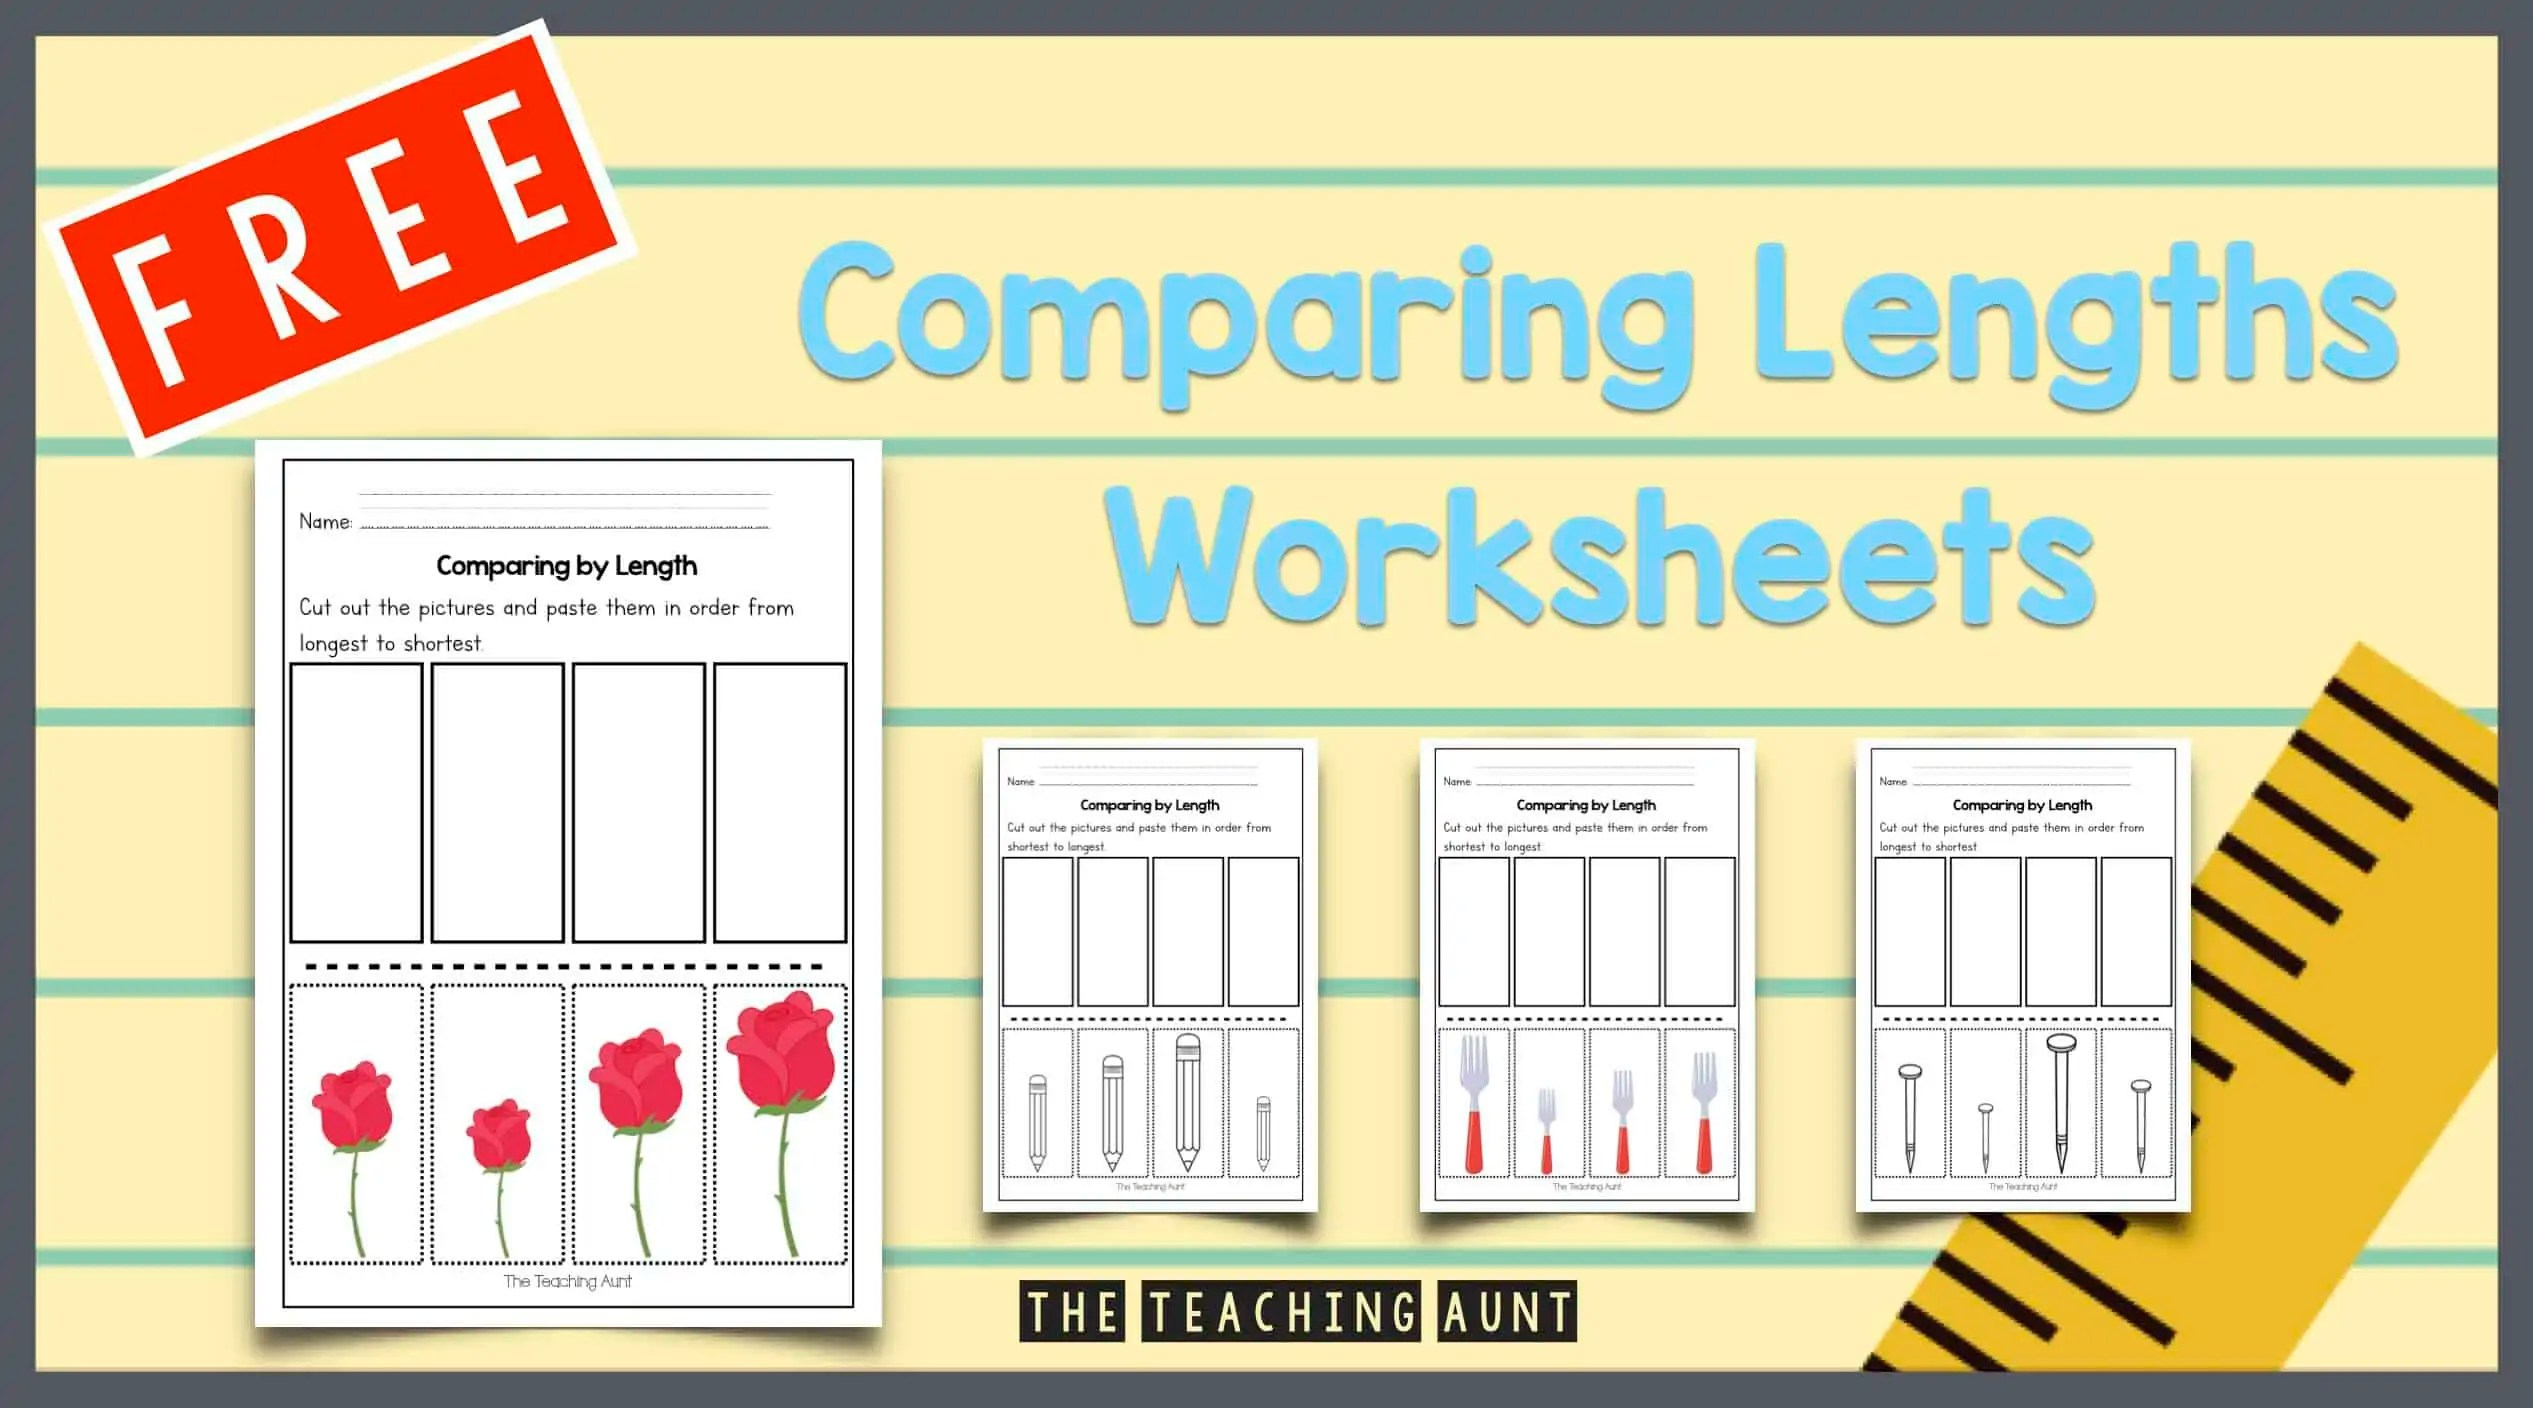 Free Comparing Lengths Worksheets - The Teaching Aunt